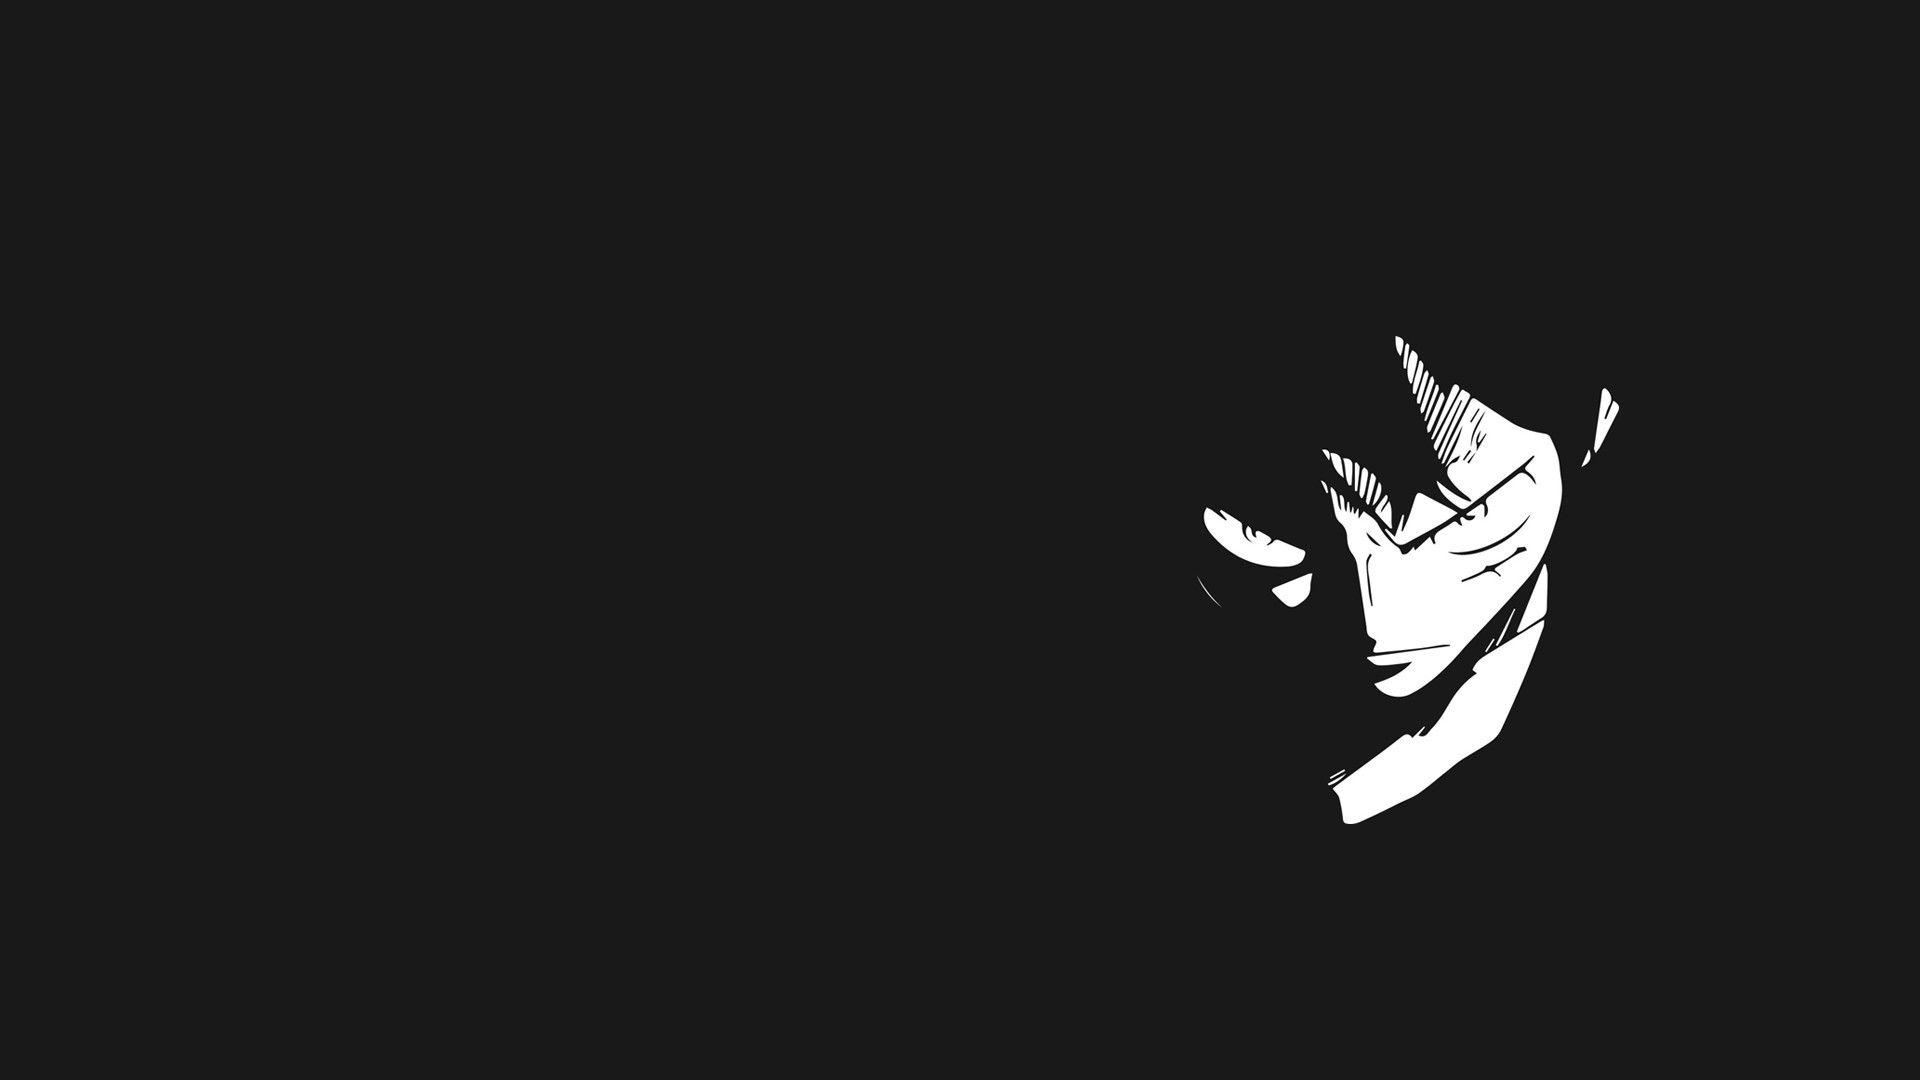 One Piece Minimalist Wallpapers - Wallpaper Cave